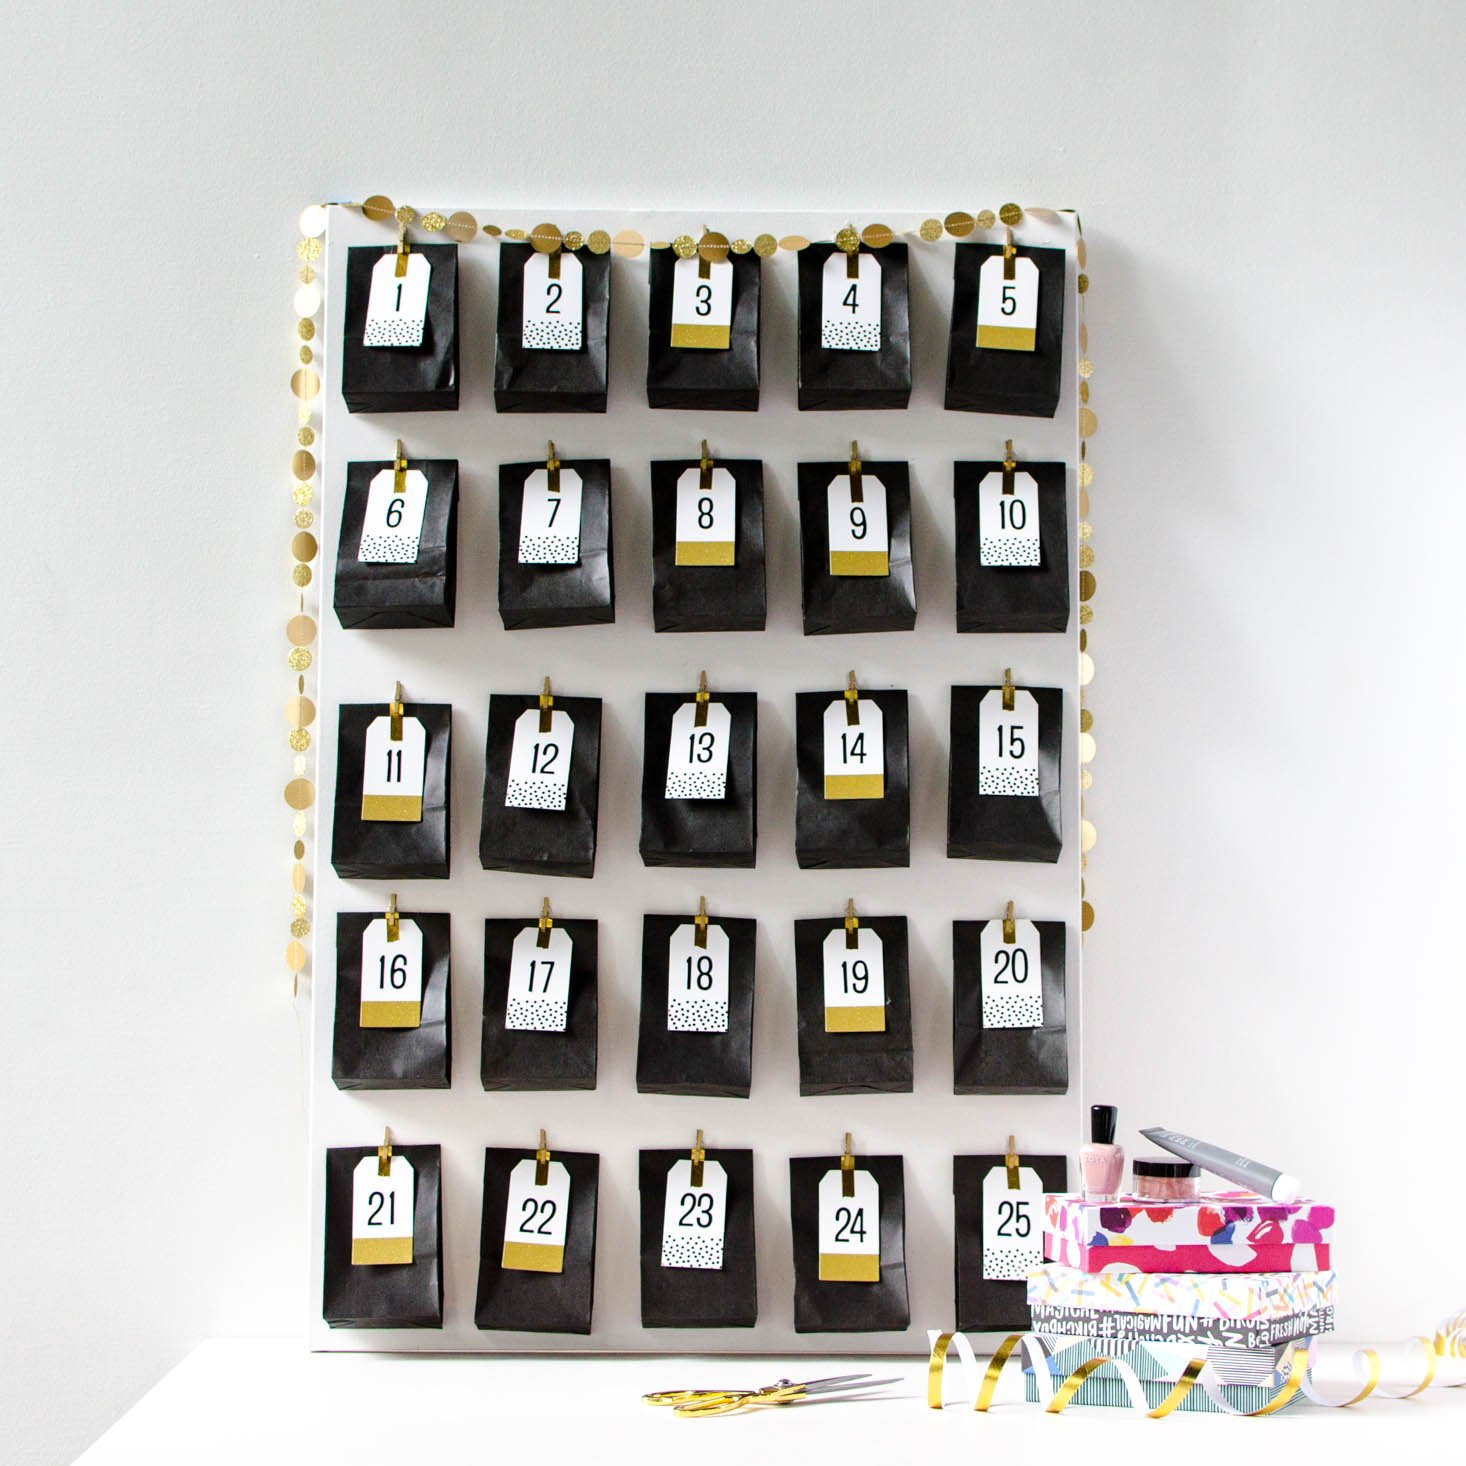 Diy Advent Calendar For Adults : Make your own diy advent calendar with beauty samples msa